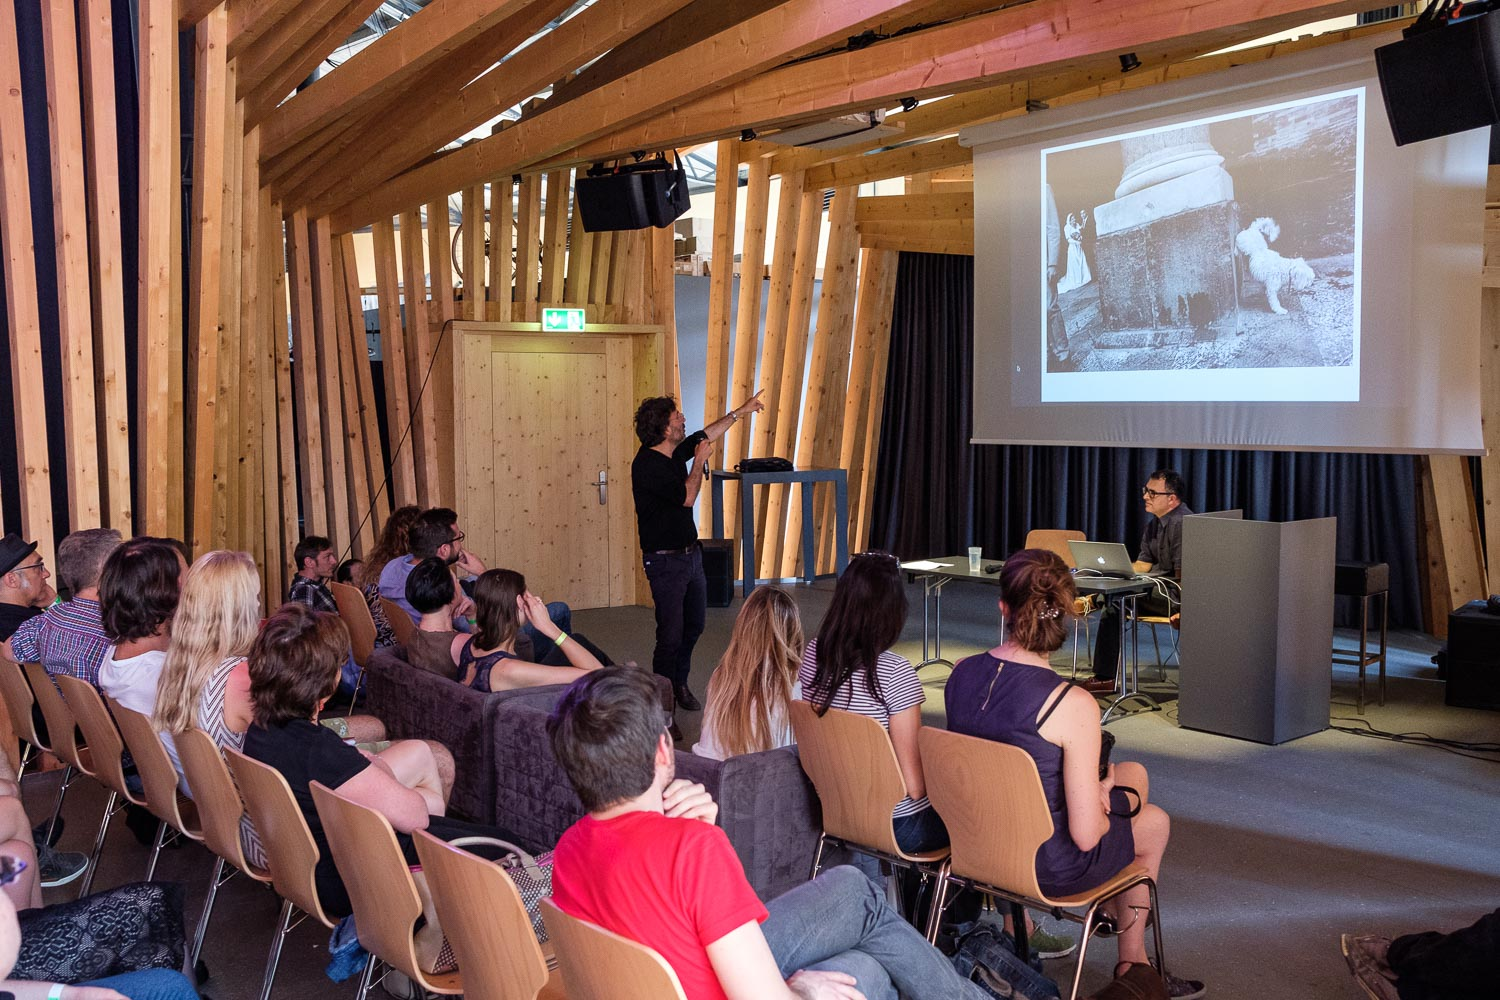 Luxembourg Street Photography Festival at Rotondes - Conference with Txema Salvans - LSPF 2018 - Photography by Christophe Van Biesen - Luxembourg Landscape and Travel Photographer